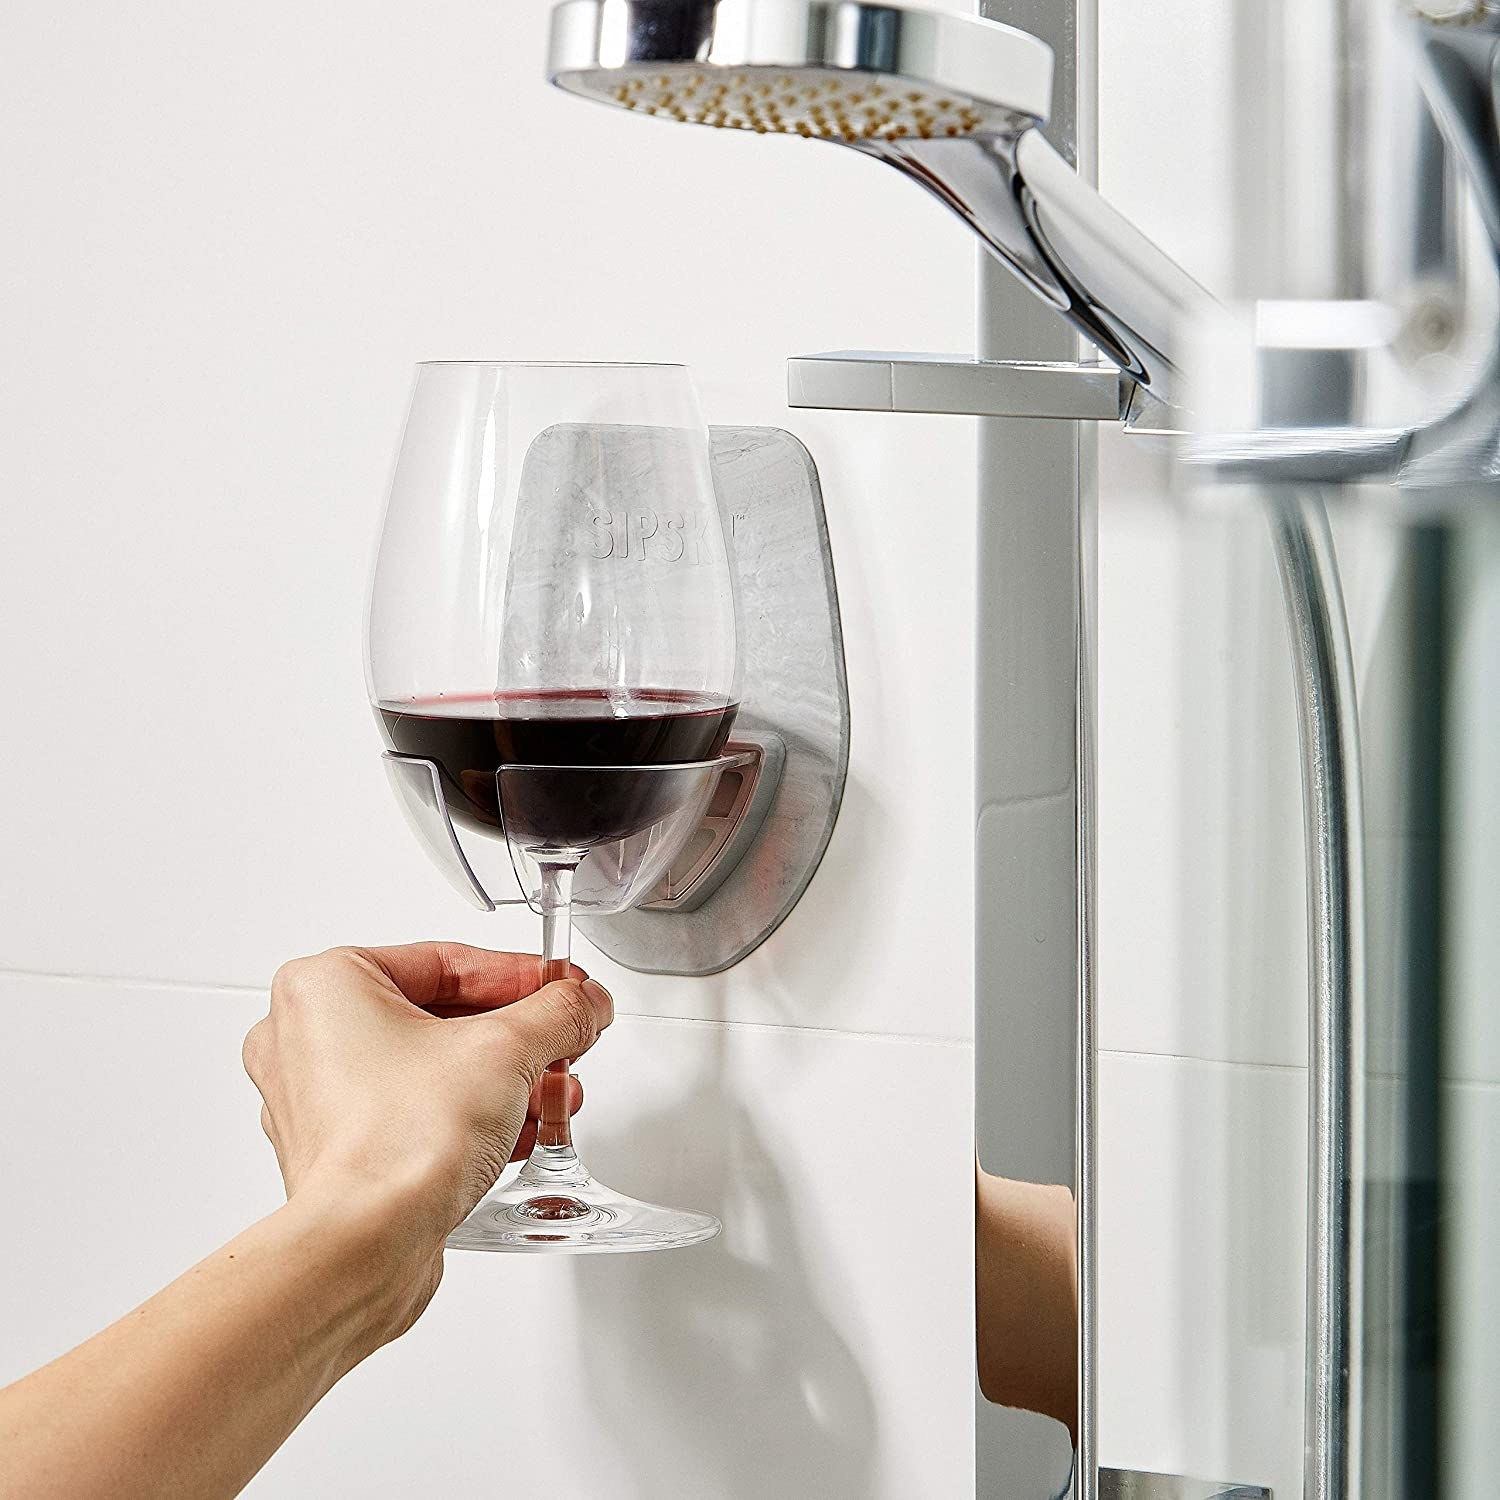 A person placing a glass of wine in the holder